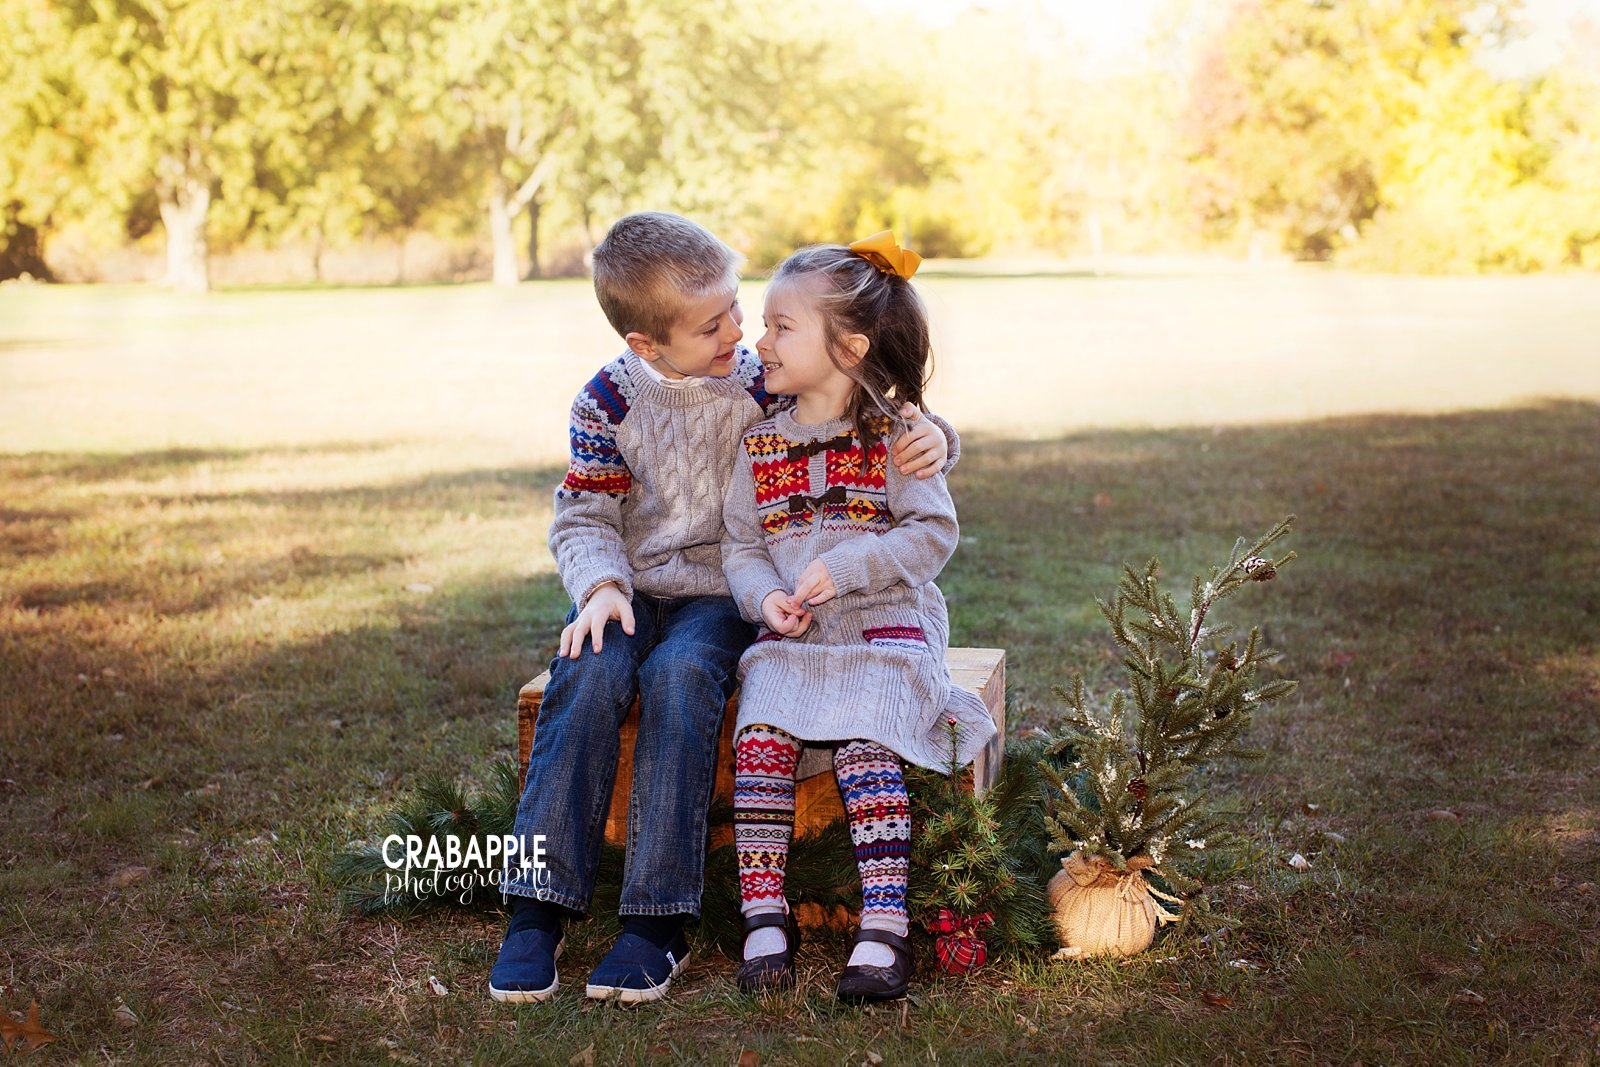 Outdoor Fall Family Photo Clothing Ideas 6 Tips